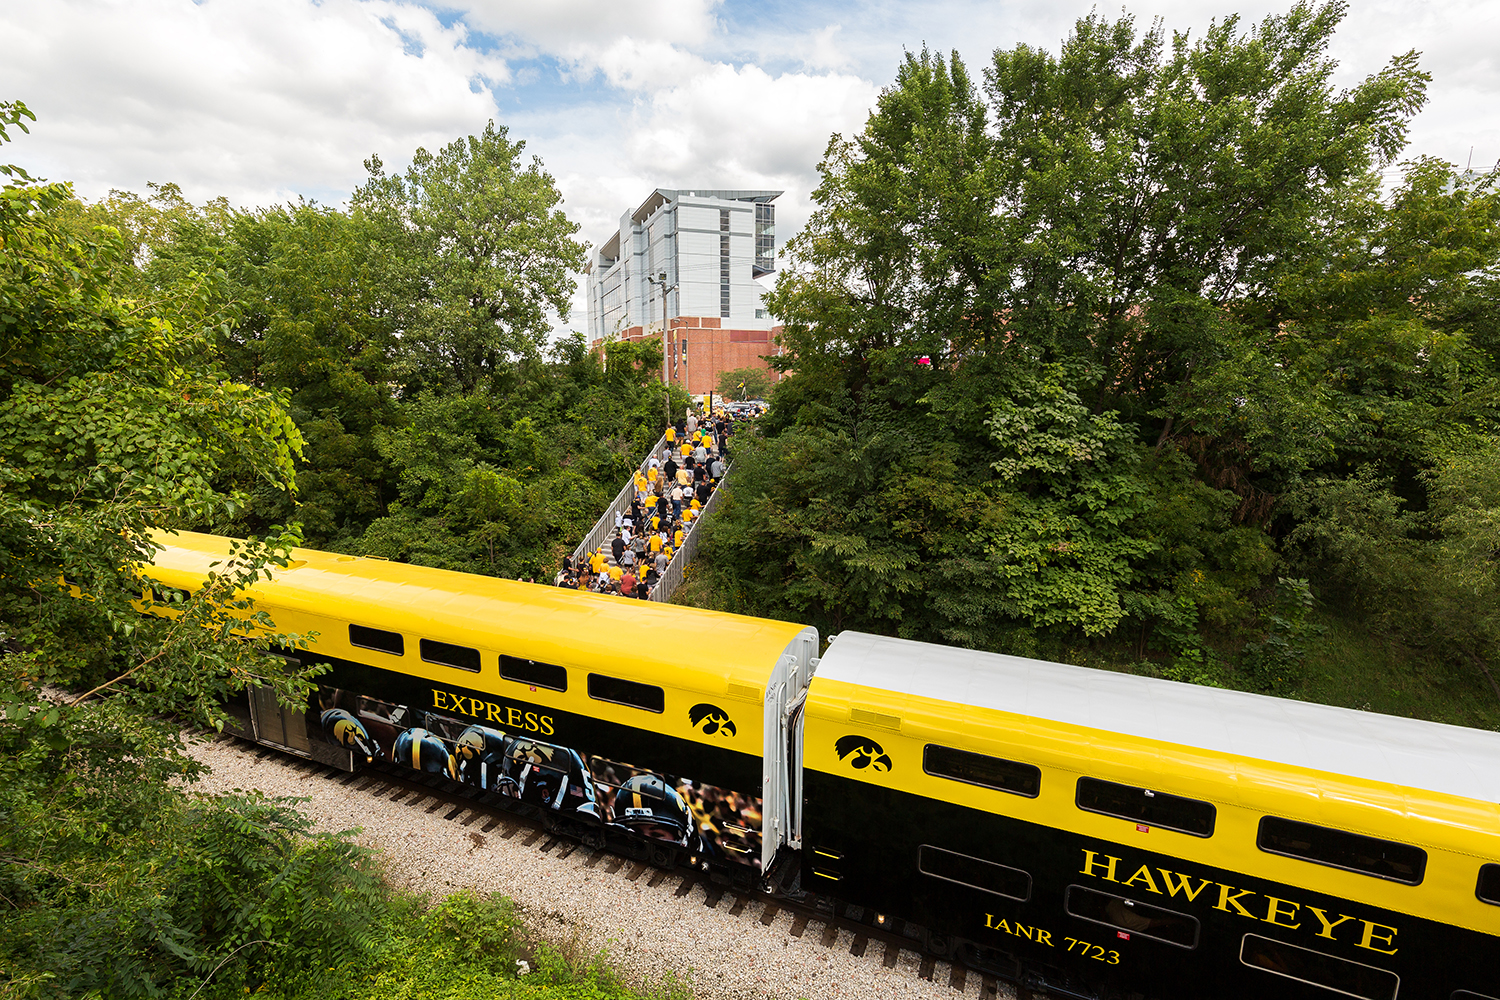 The Daily Iowan   The Hawkeye Express: An intrinsic part of